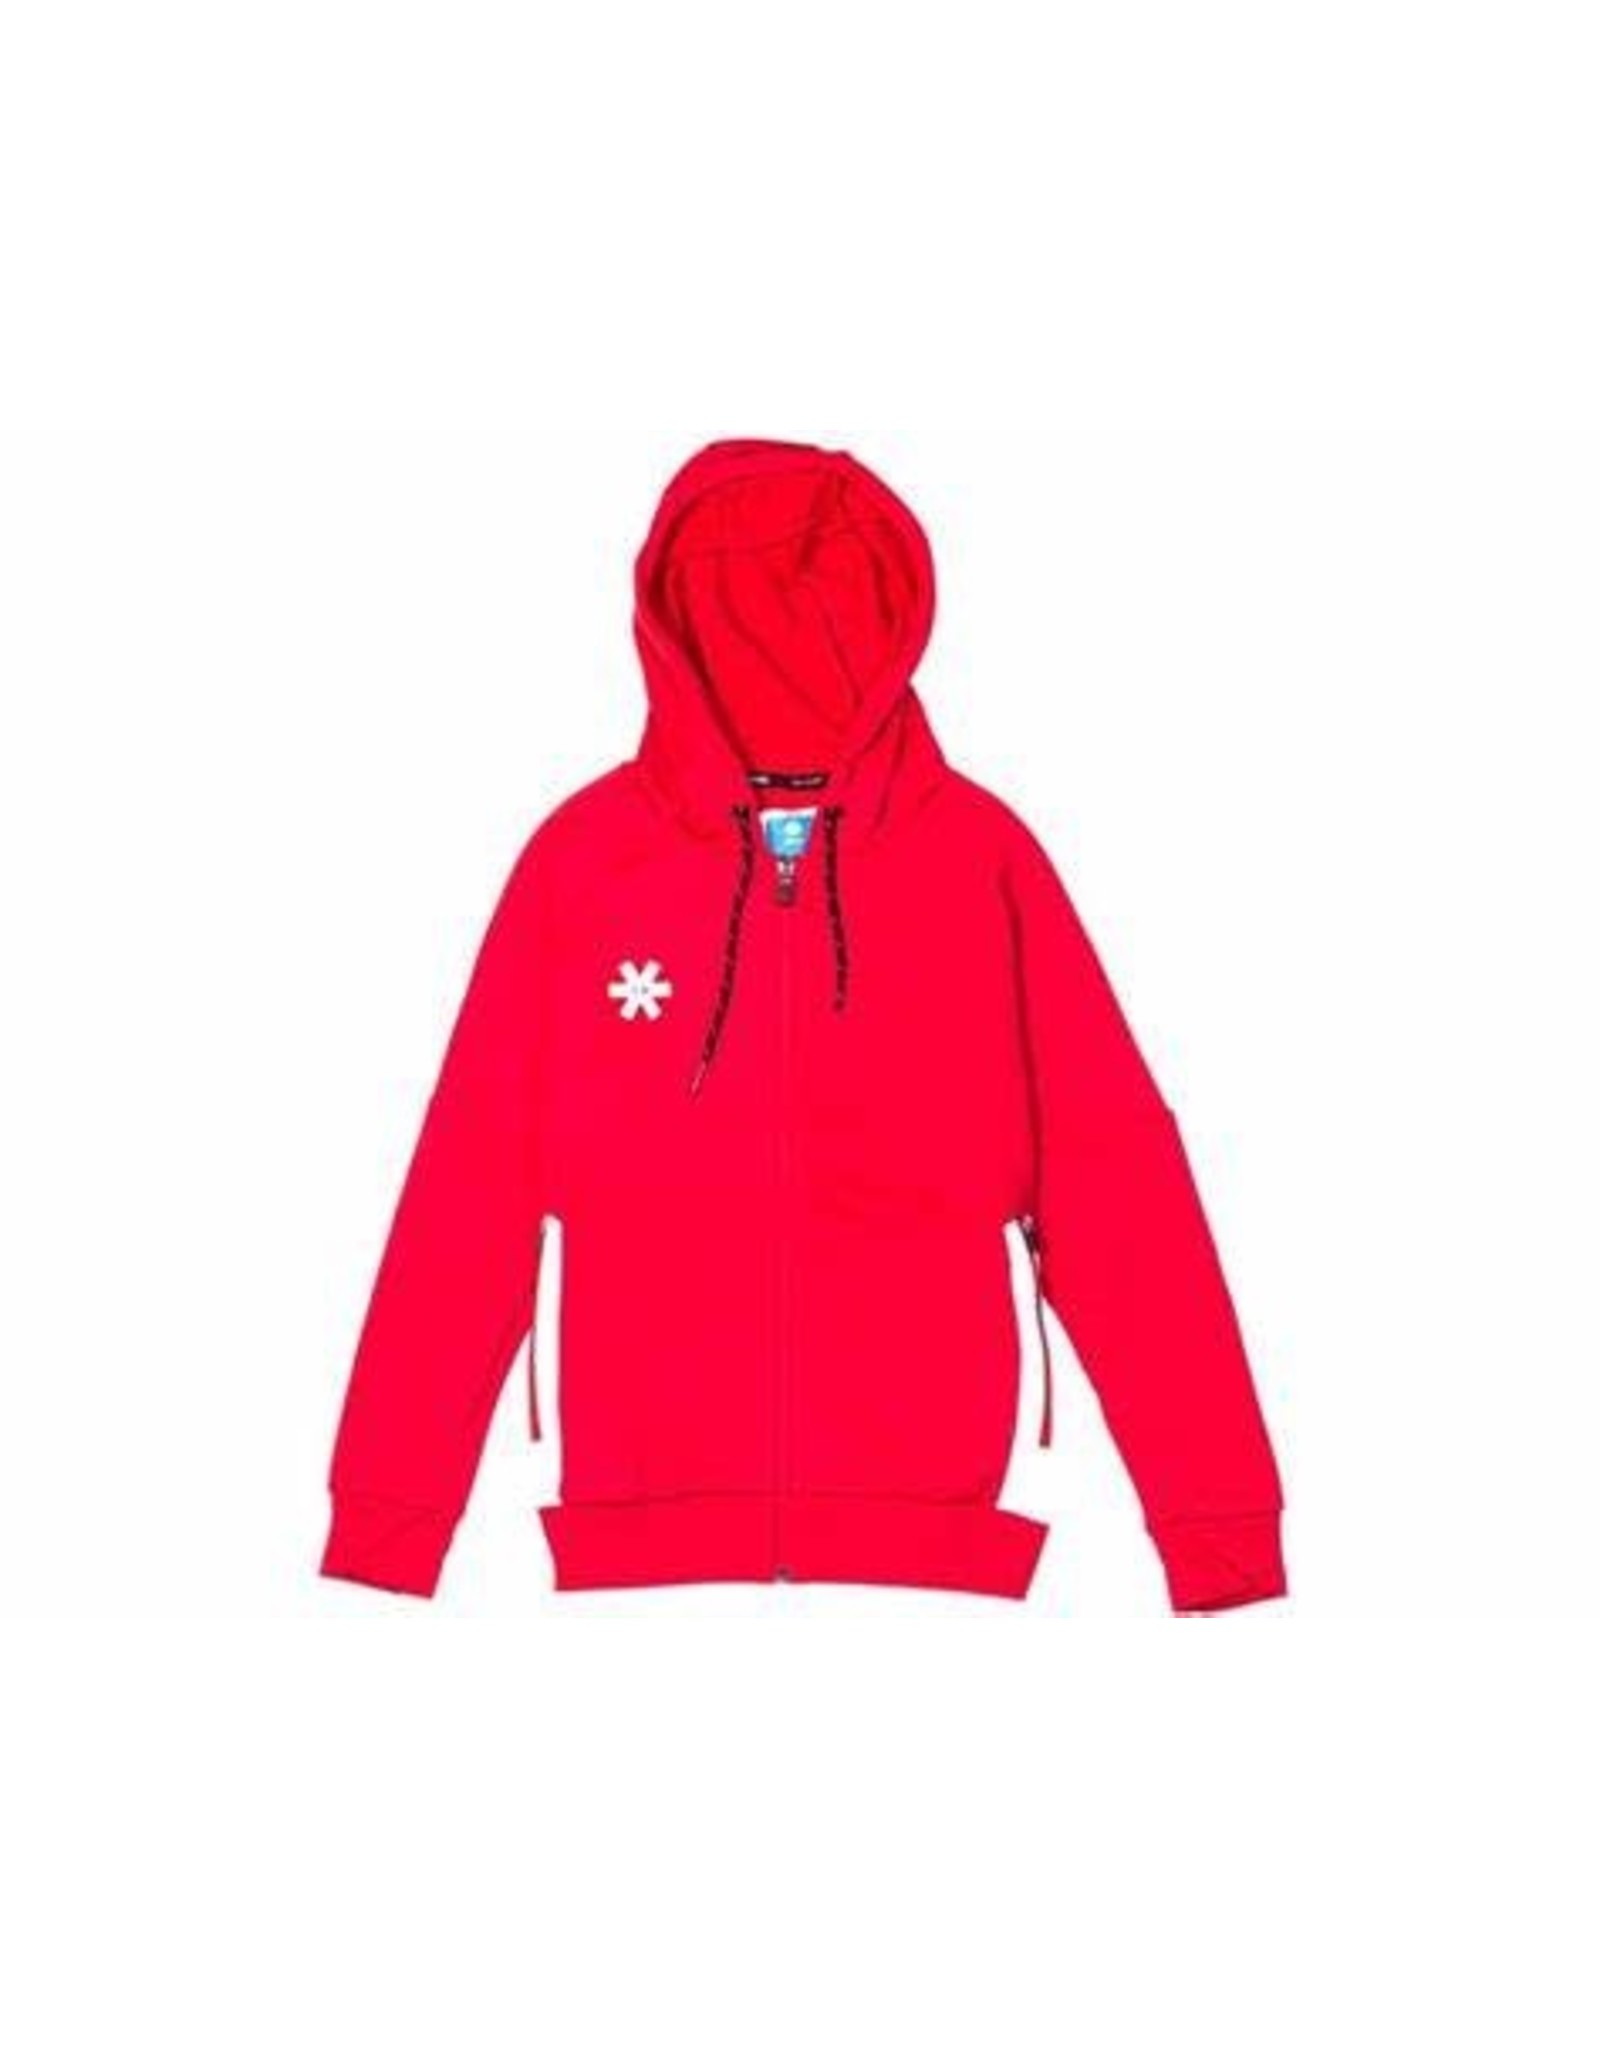 OSAKA OSAKA MEN TRAINING ZIP HOODIE 18/19